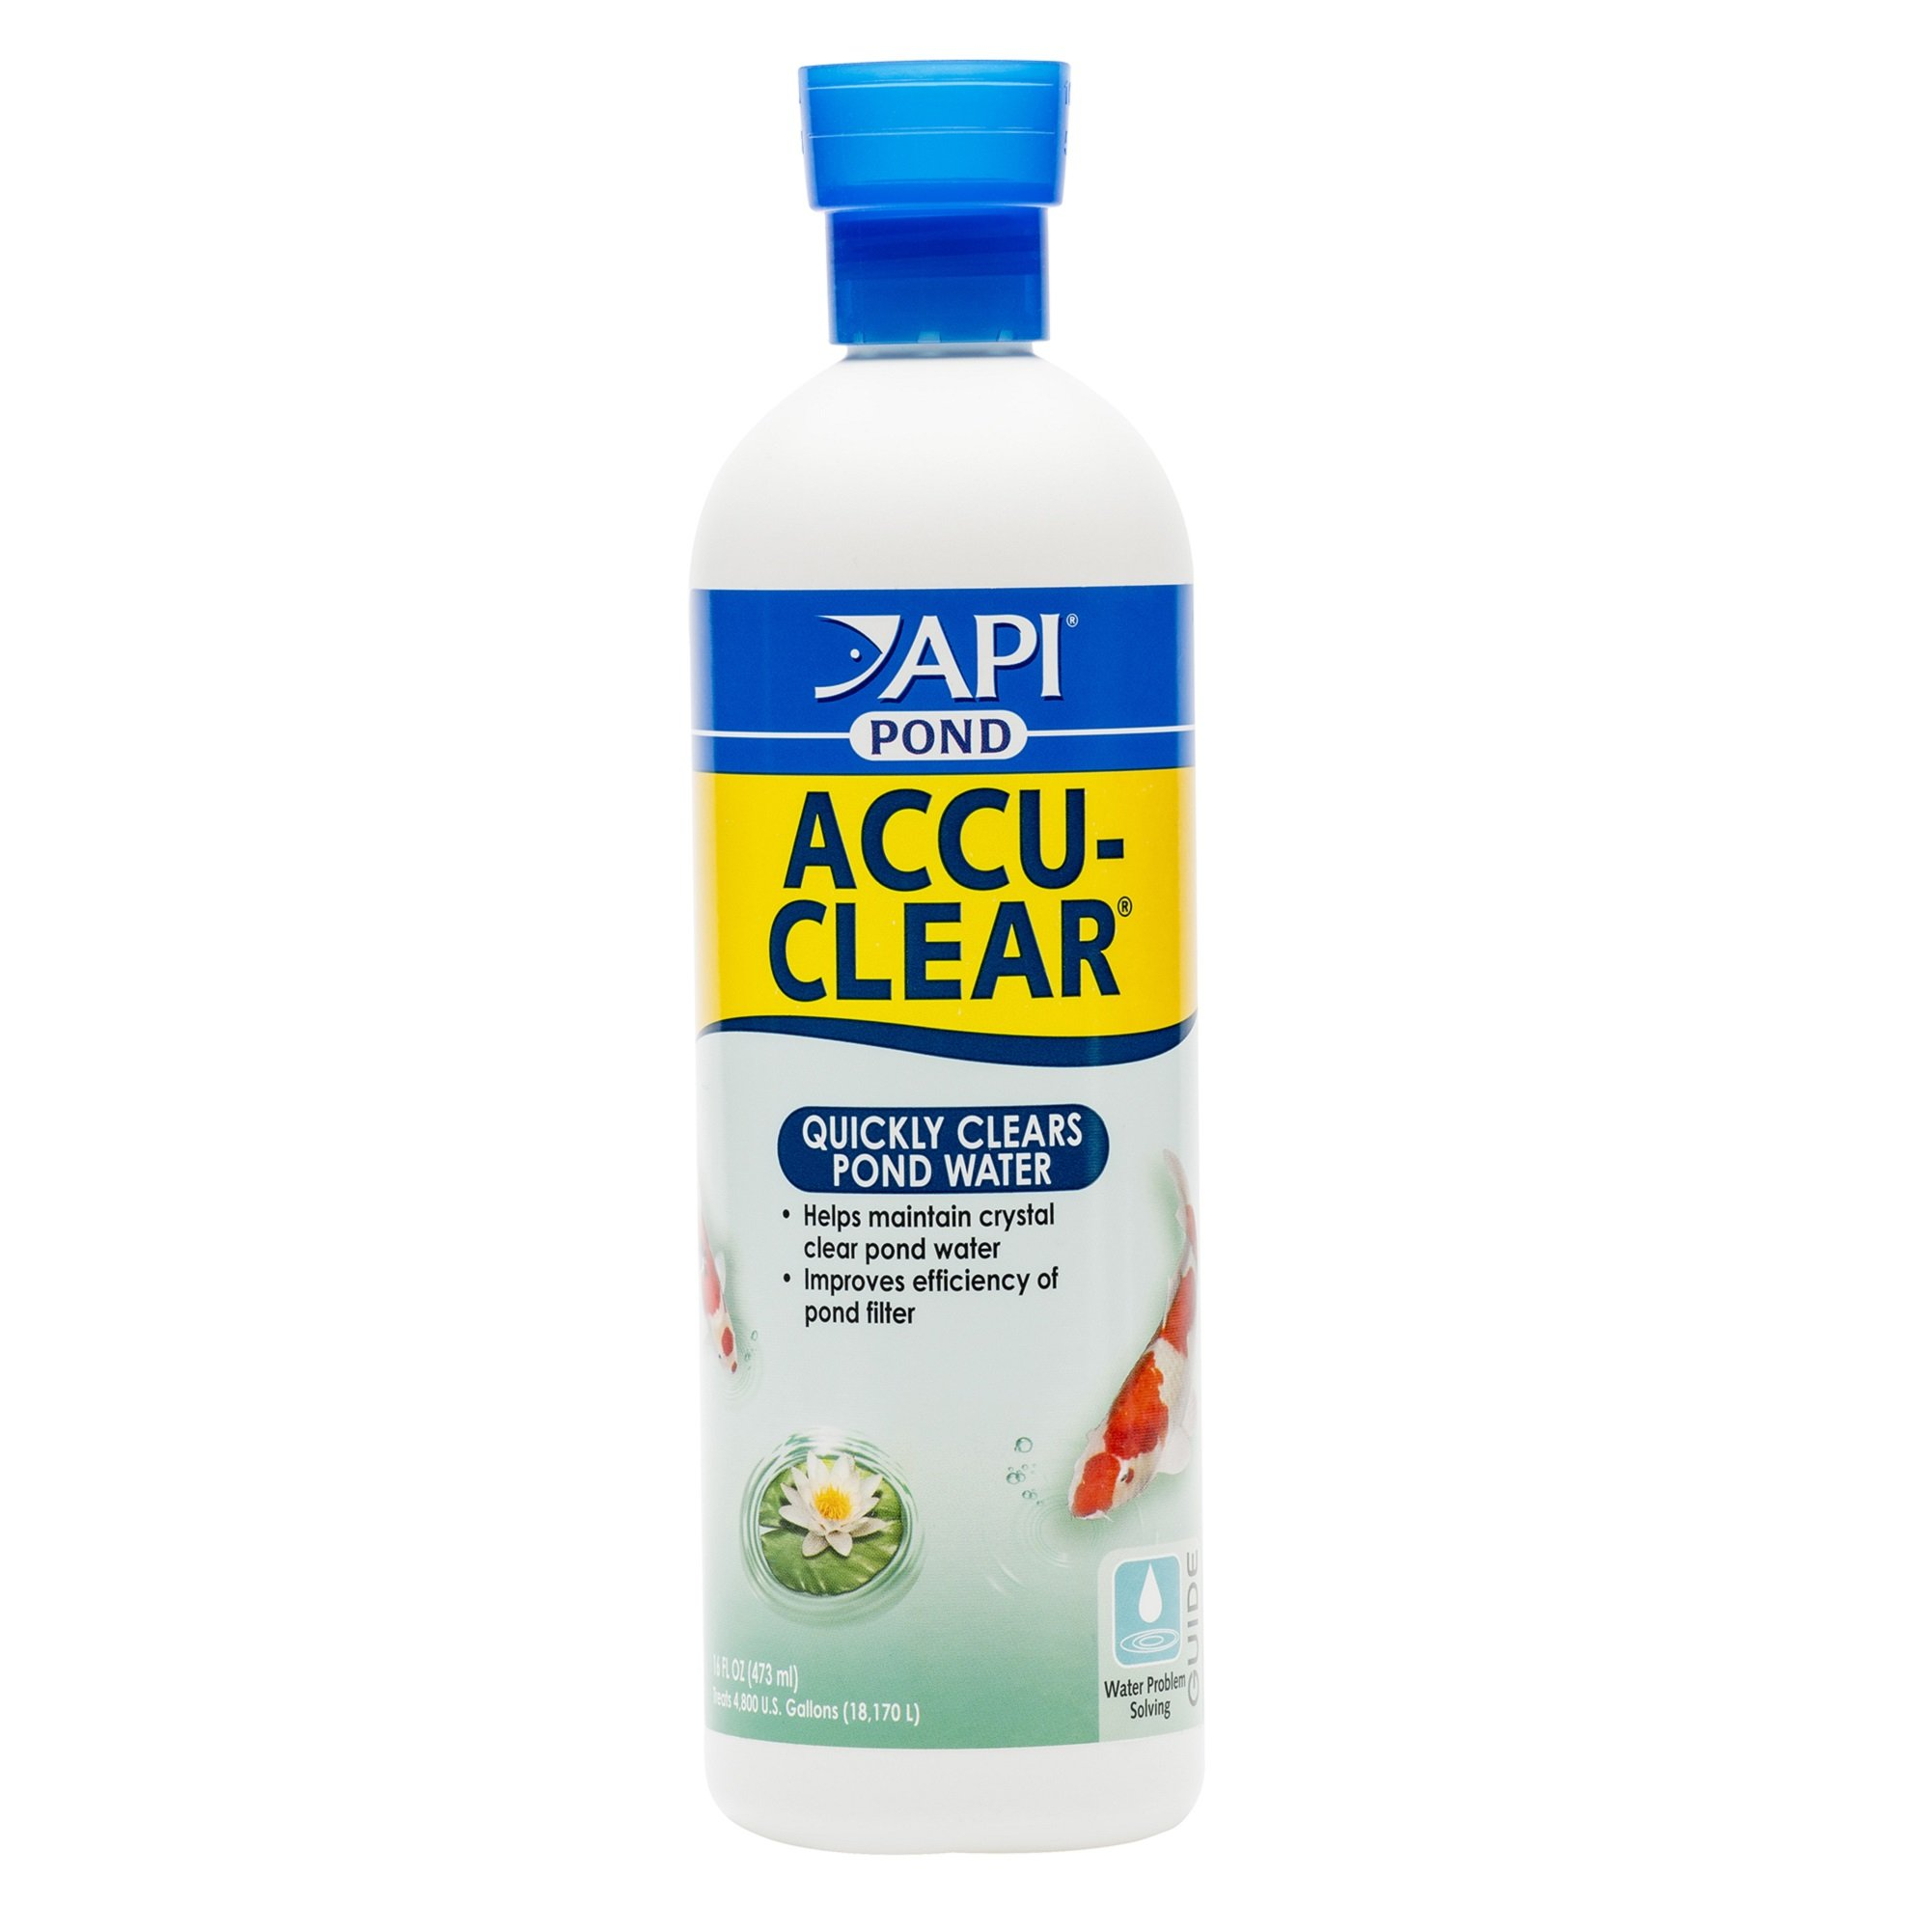 API POND ACCU-CLEAR Pond Water Clarifier 16-Ounce Bottle by API